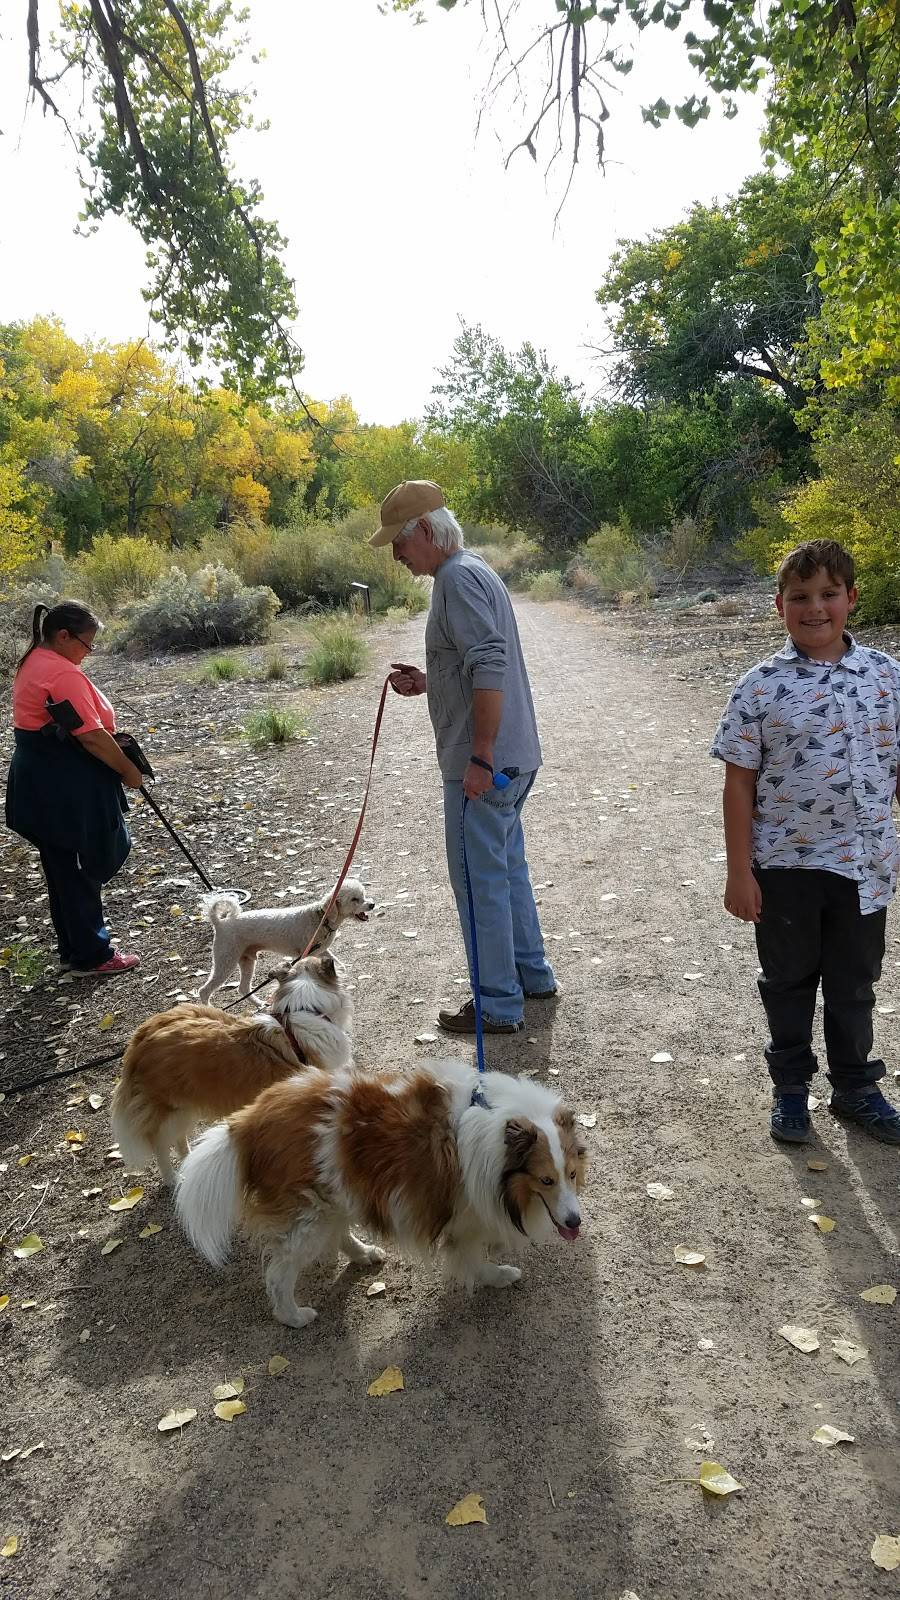 Willow Creek Trailhead and Open Space - park    Photo 2 of 7   Address: Willow Creek Rd NE, Rio Rancho, NM 87144, USA   Phone: (505) 891-5015